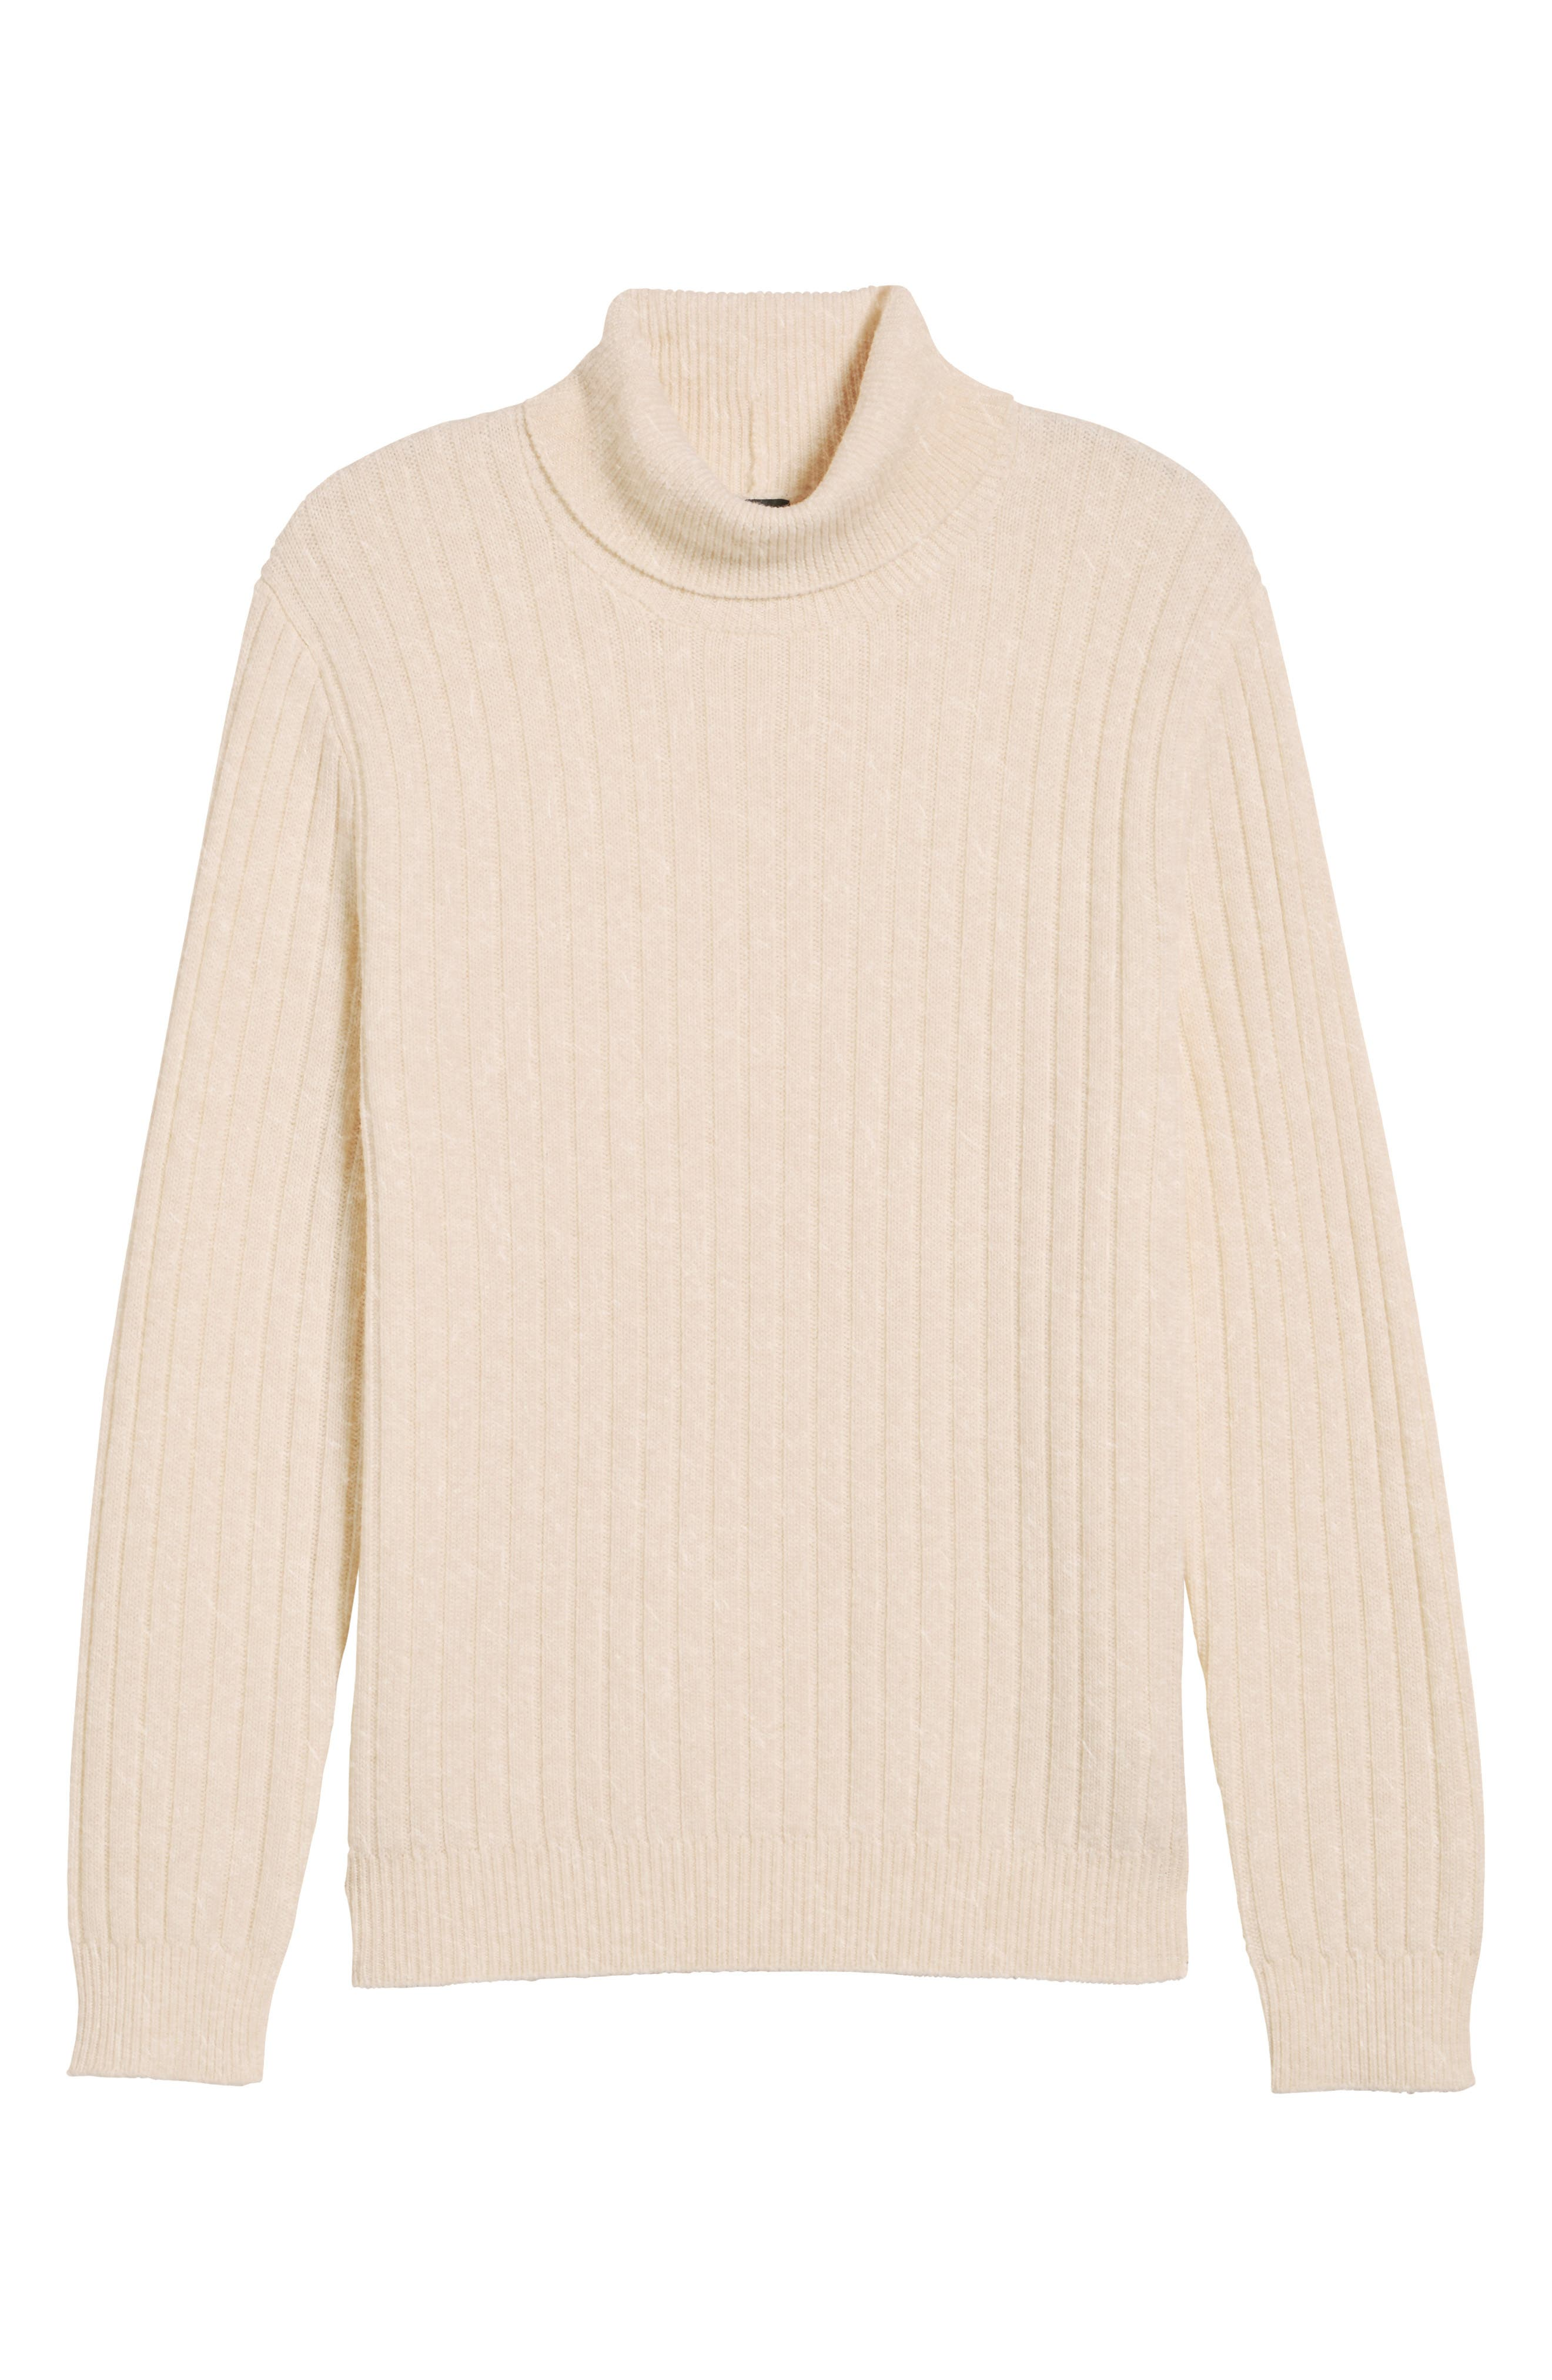 Ribbed Turtleneck Wool Sweater,                             Alternate thumbnail 6, color,                             250